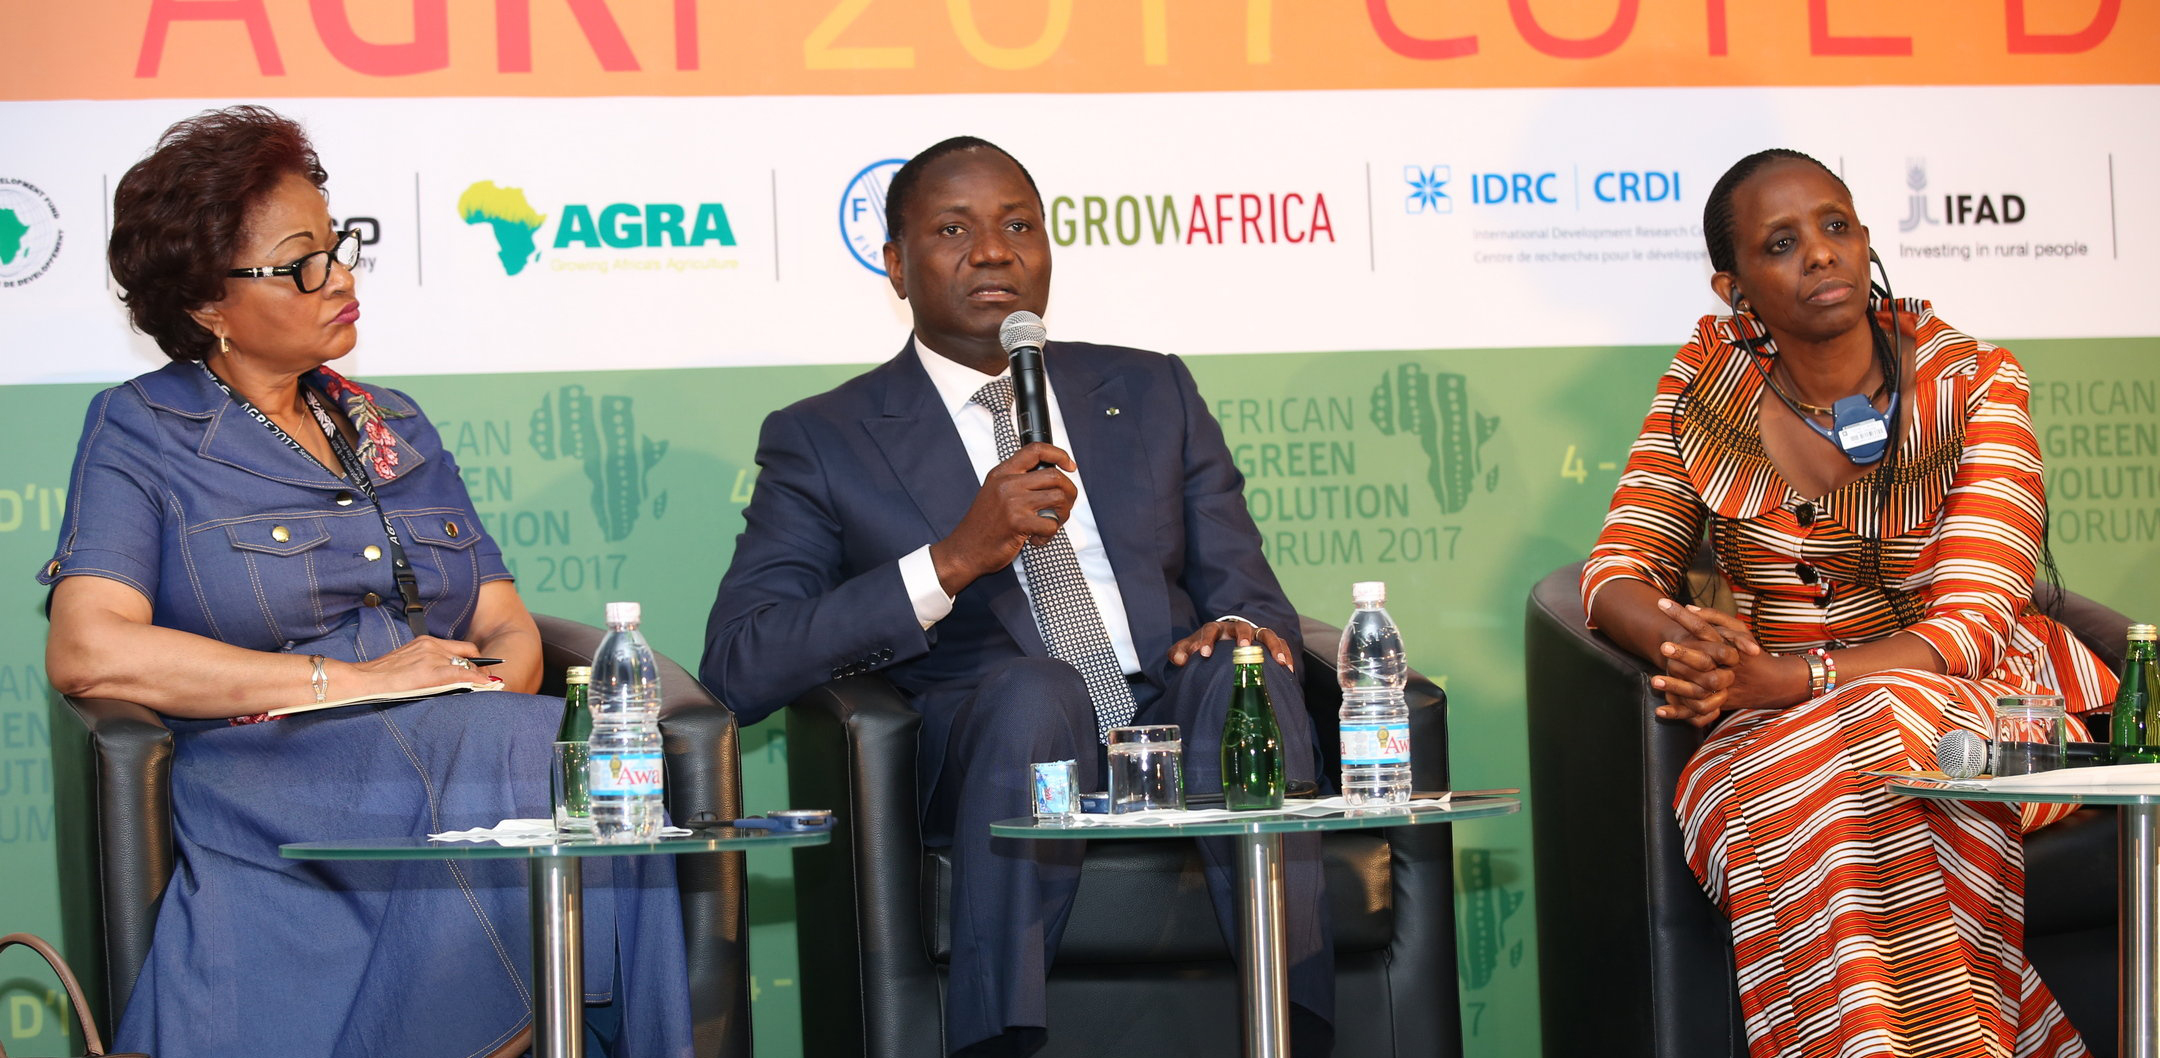 AGRF 2017: The time for talk is over and it is now time for action